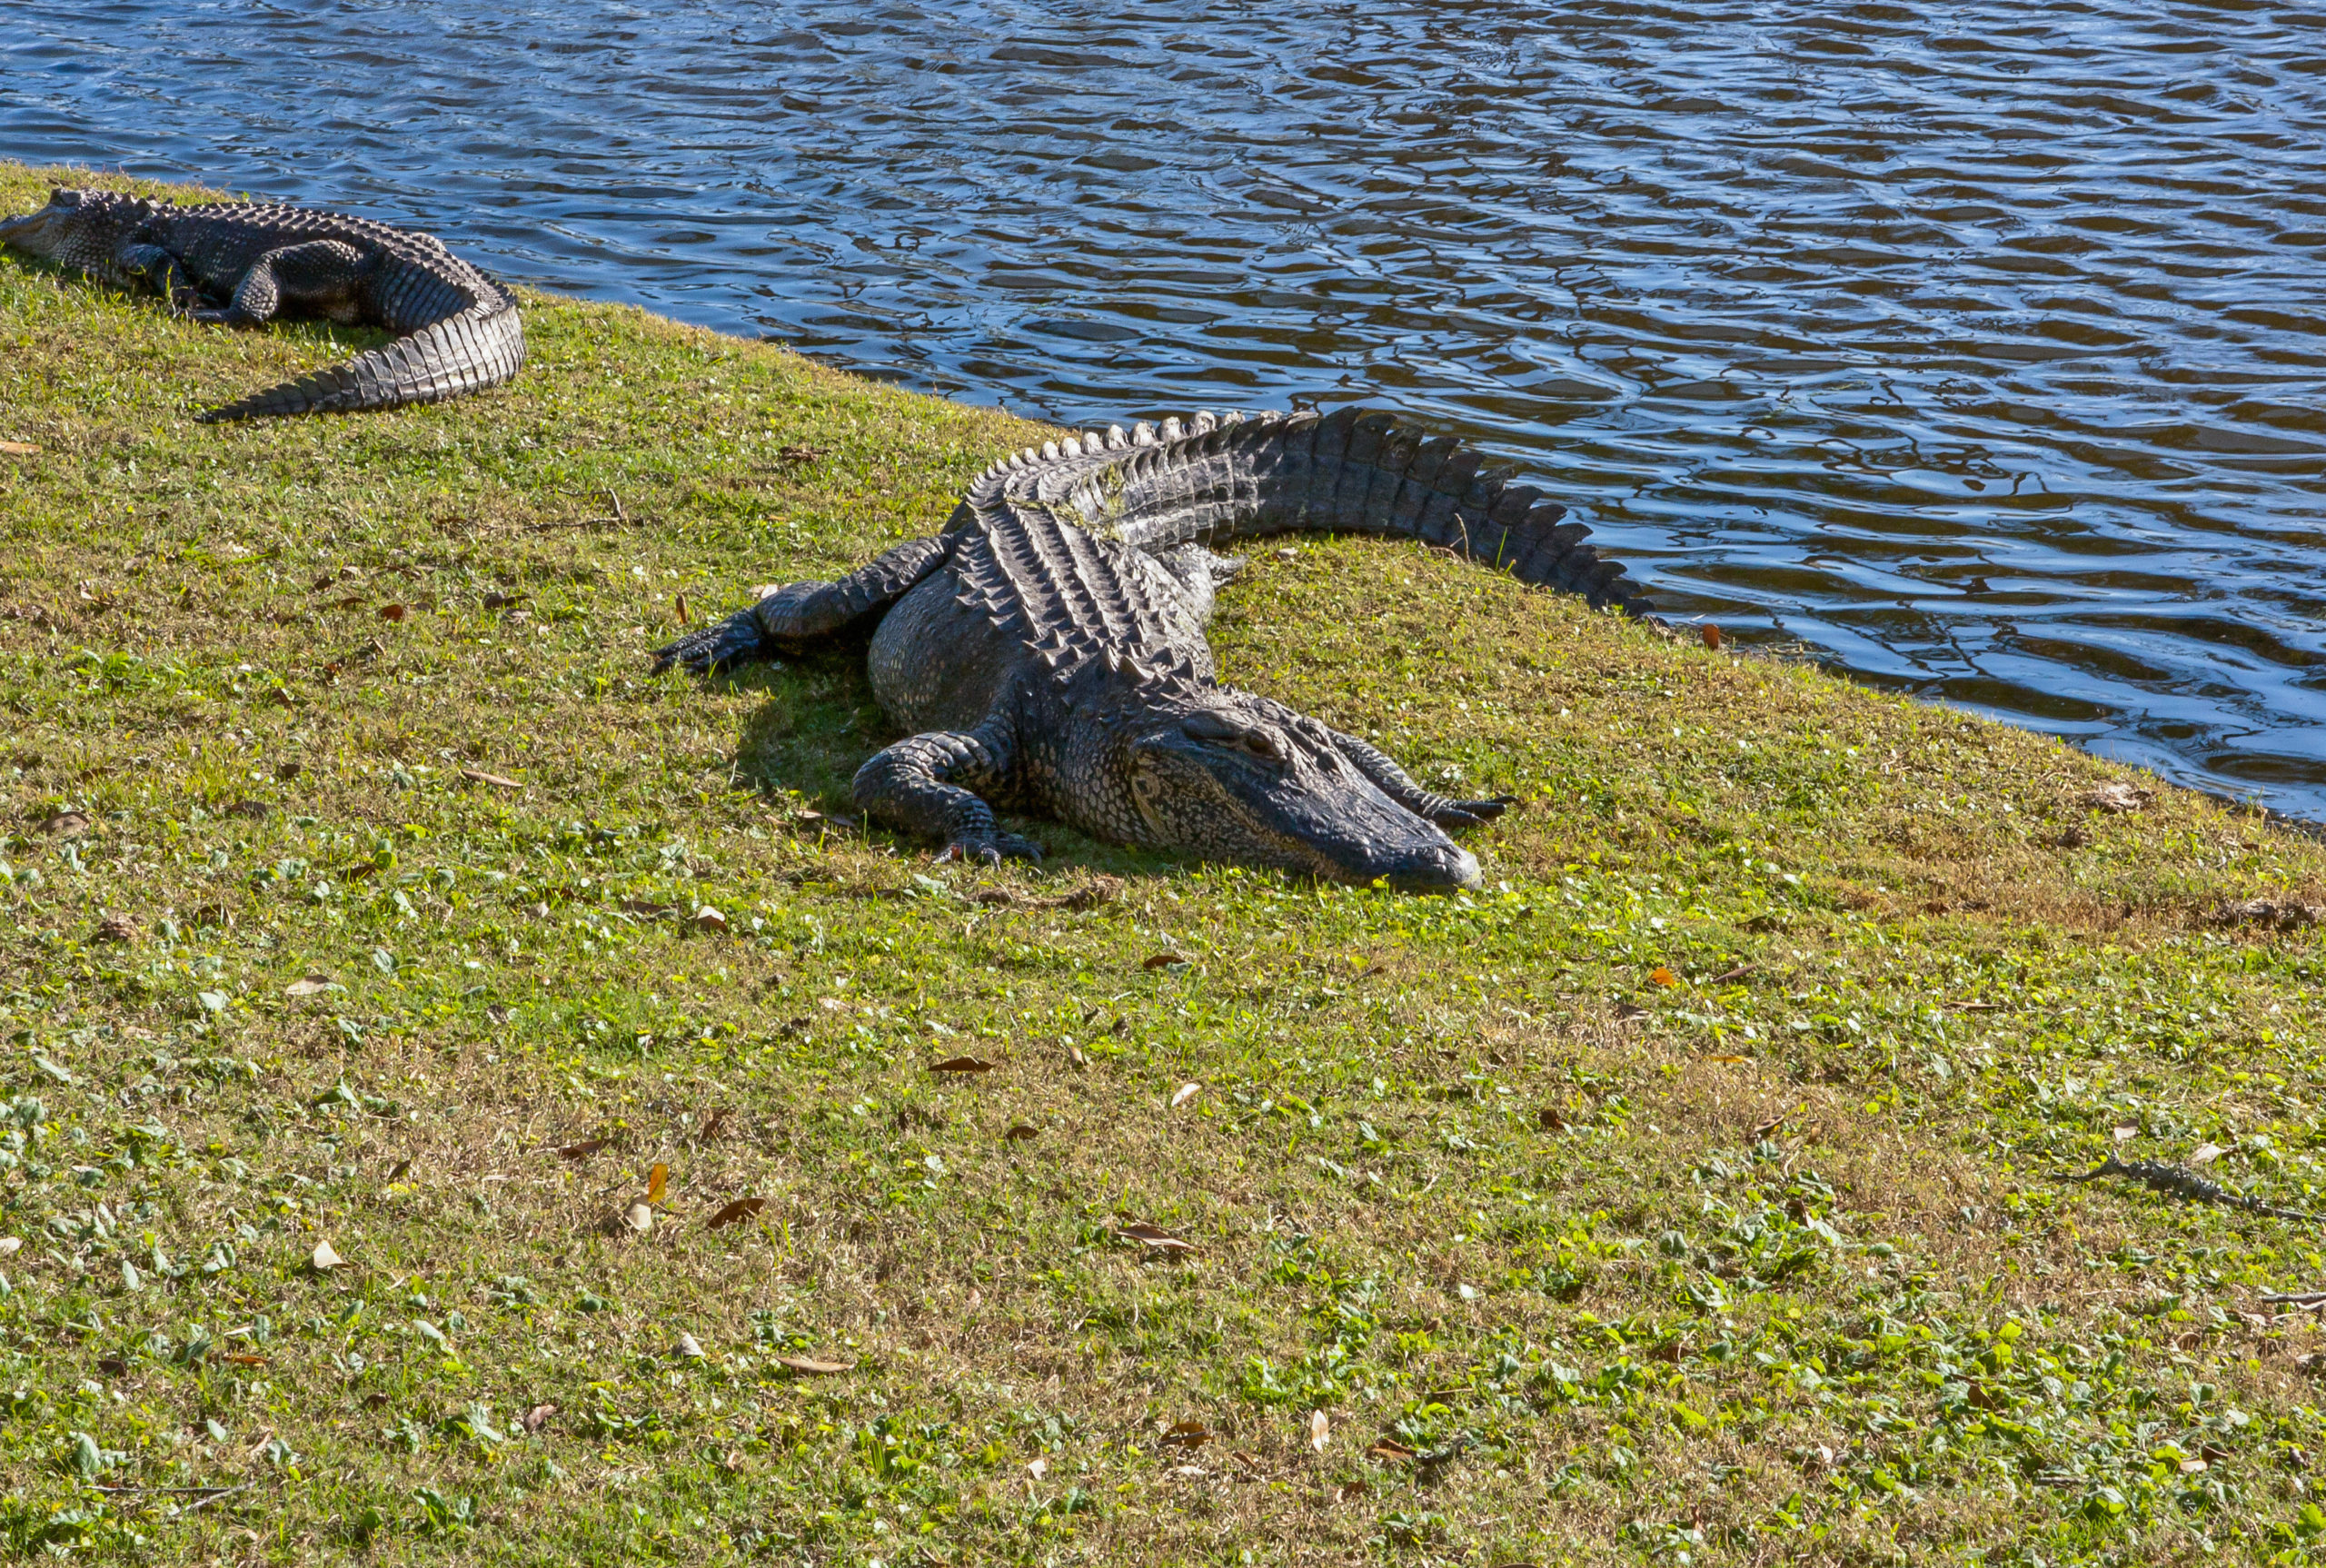 Florida Man Makes Epic Alligator Capture Using Only A Trash Can (VIDEO)